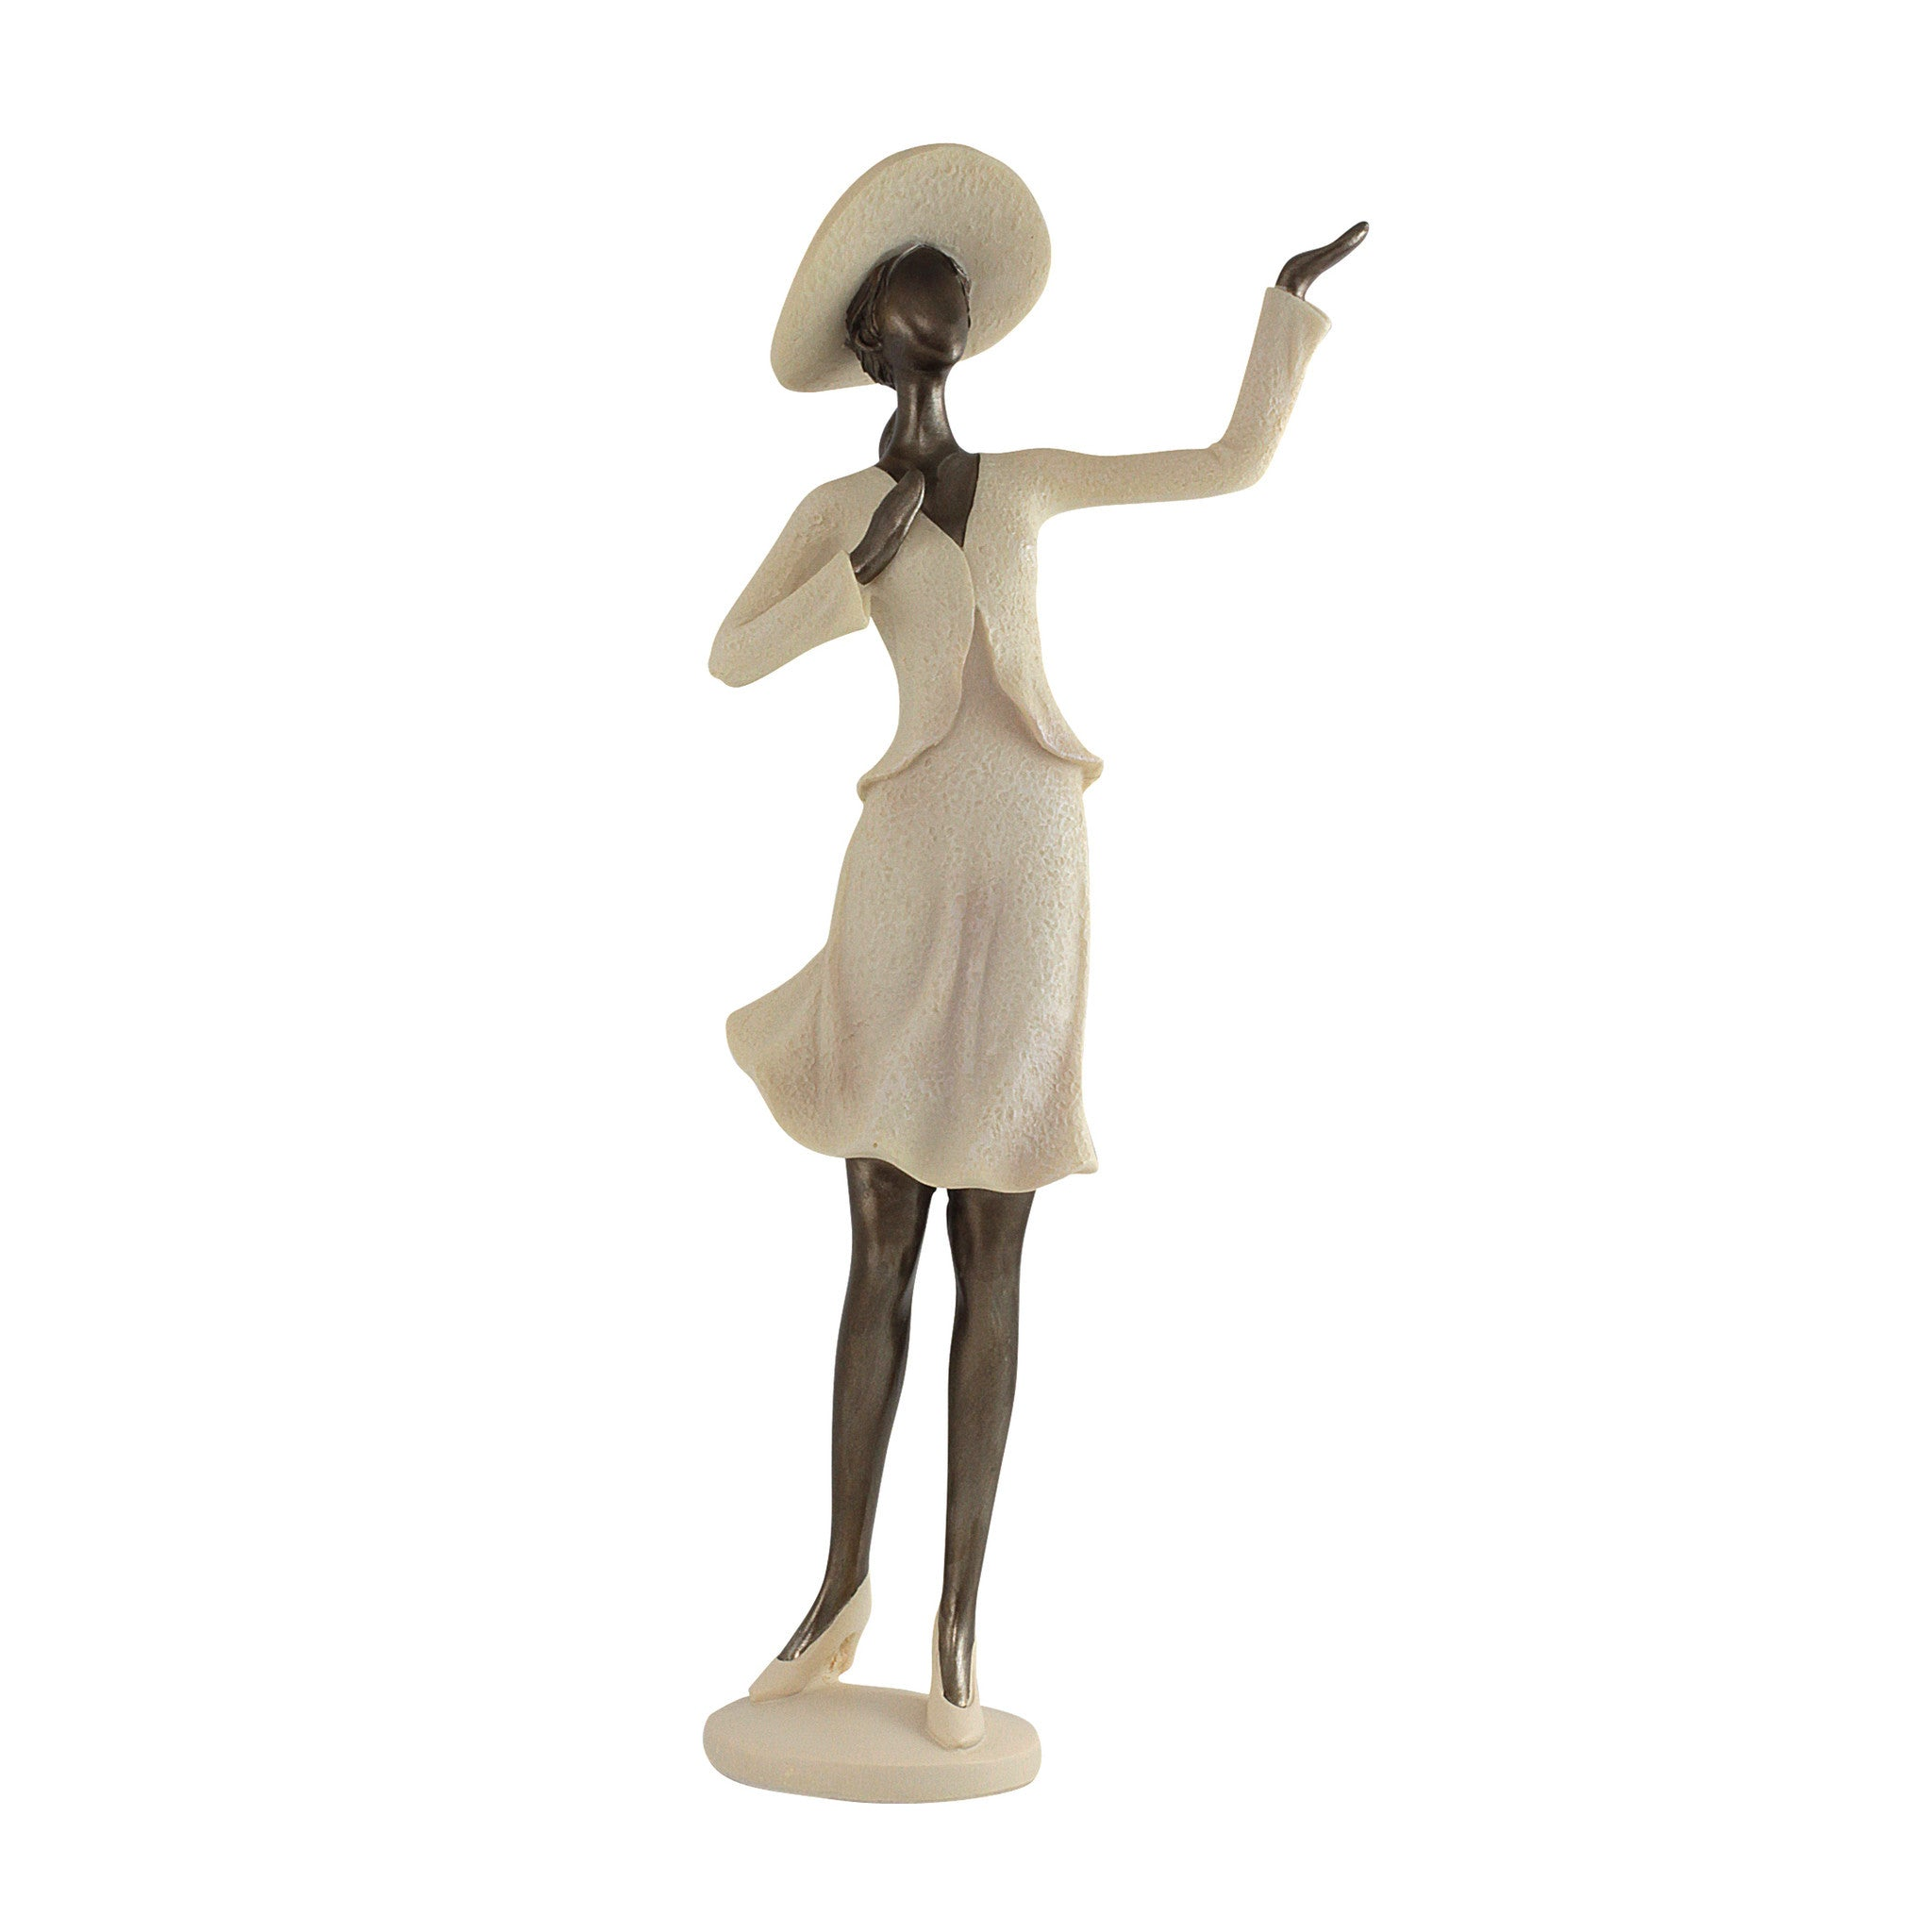 Feeling the Spirit Figurine: Virtuous Woman Collection by Unison Gifts